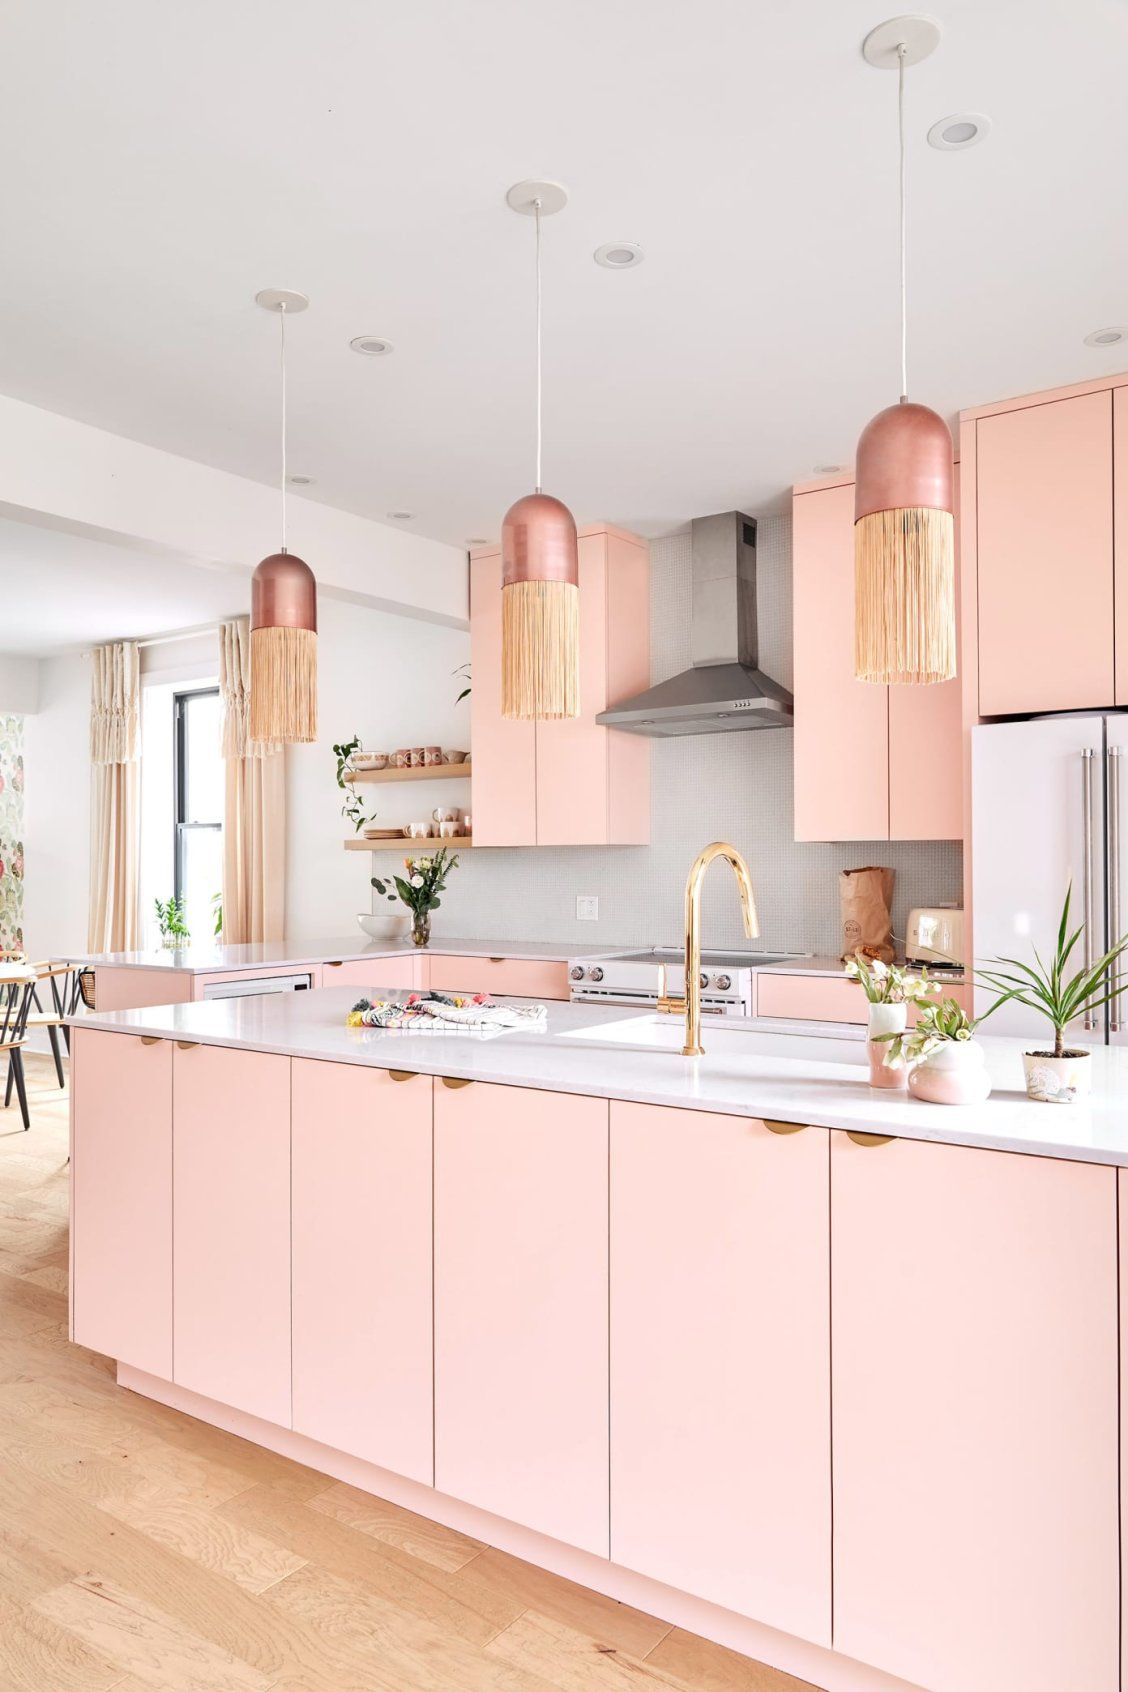 This Renovated Montreal Home Has The Most Stunning Modern Pink Kitchen In 2020 Pink Kitchen Cabinets Pink Kitchen Kitchen Remodel